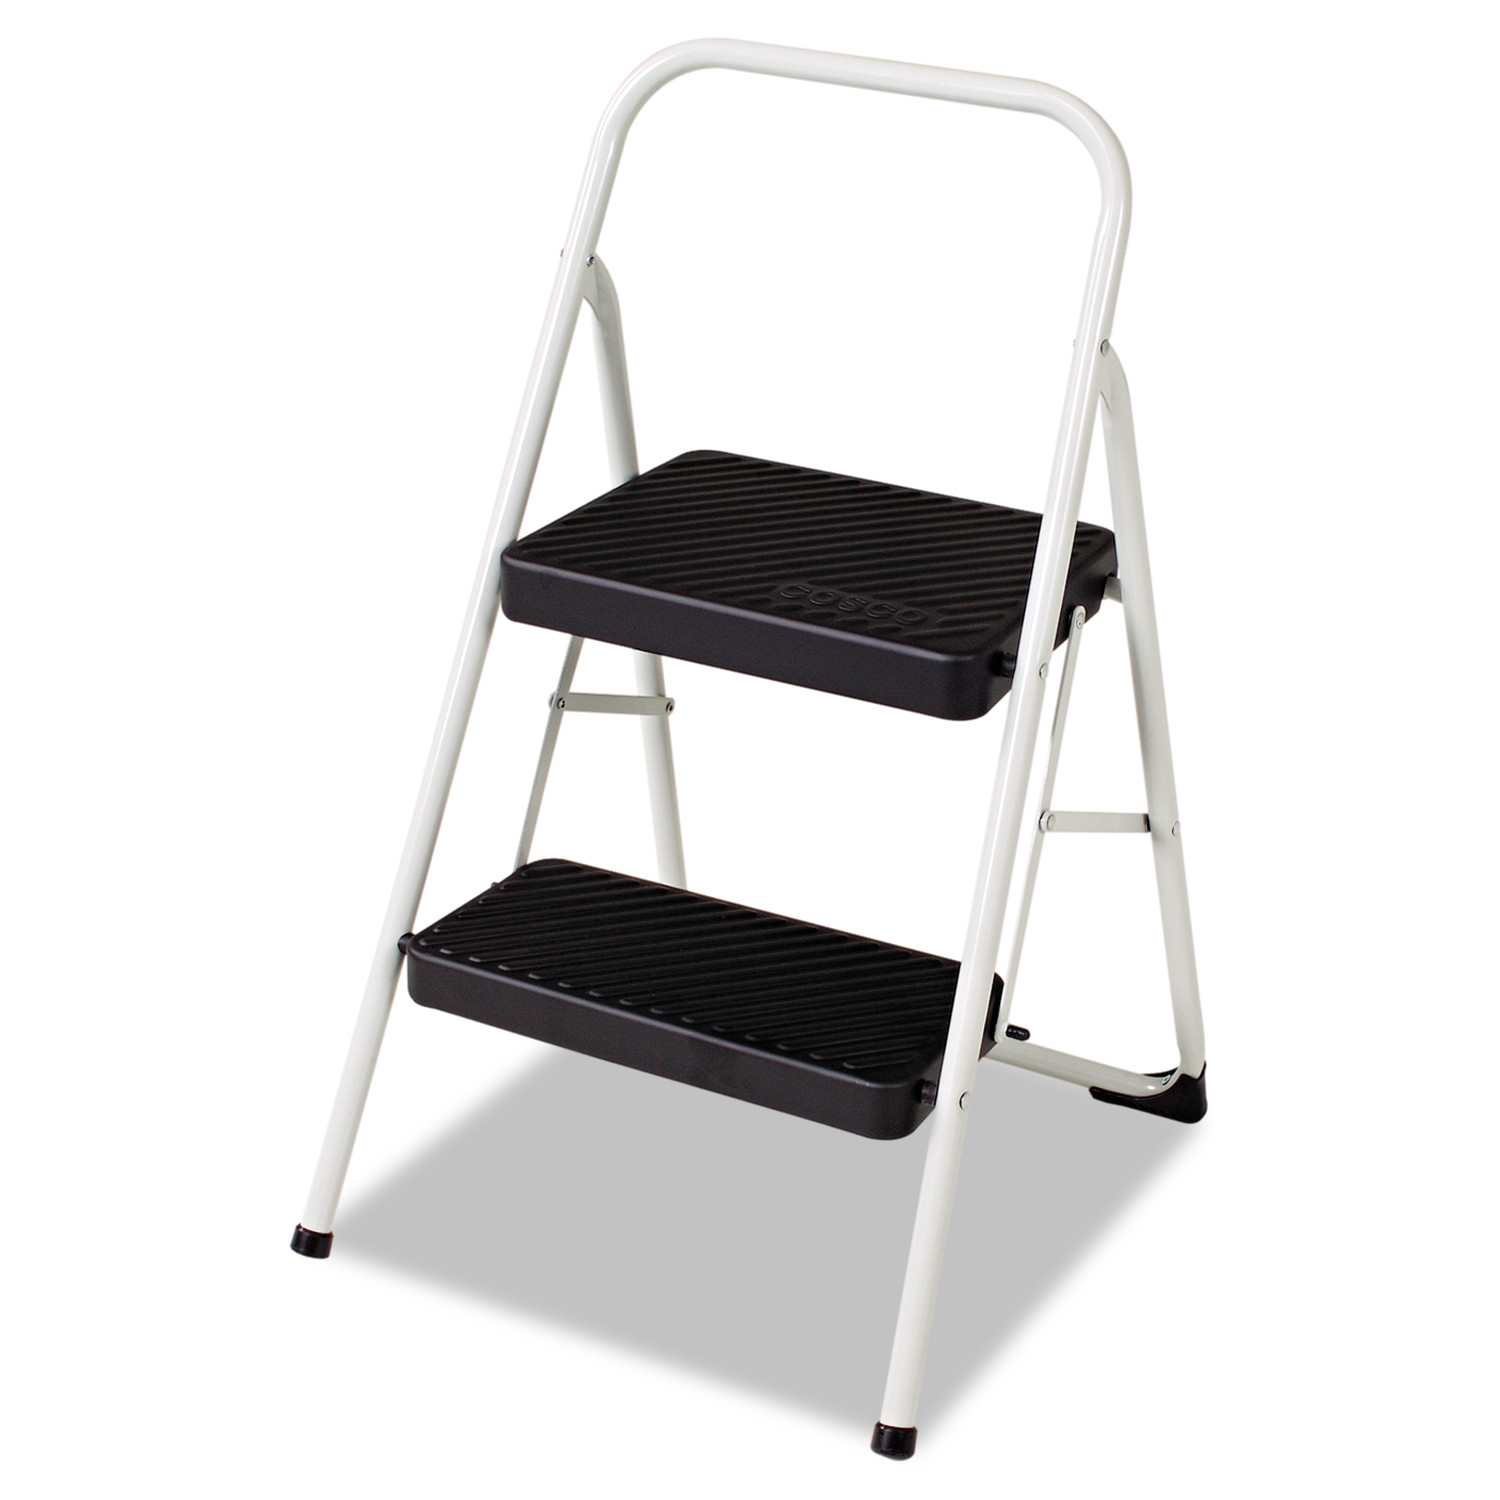 Cosco 2 Step Folding Steel Step Stool 200lbs 17 3 8w X